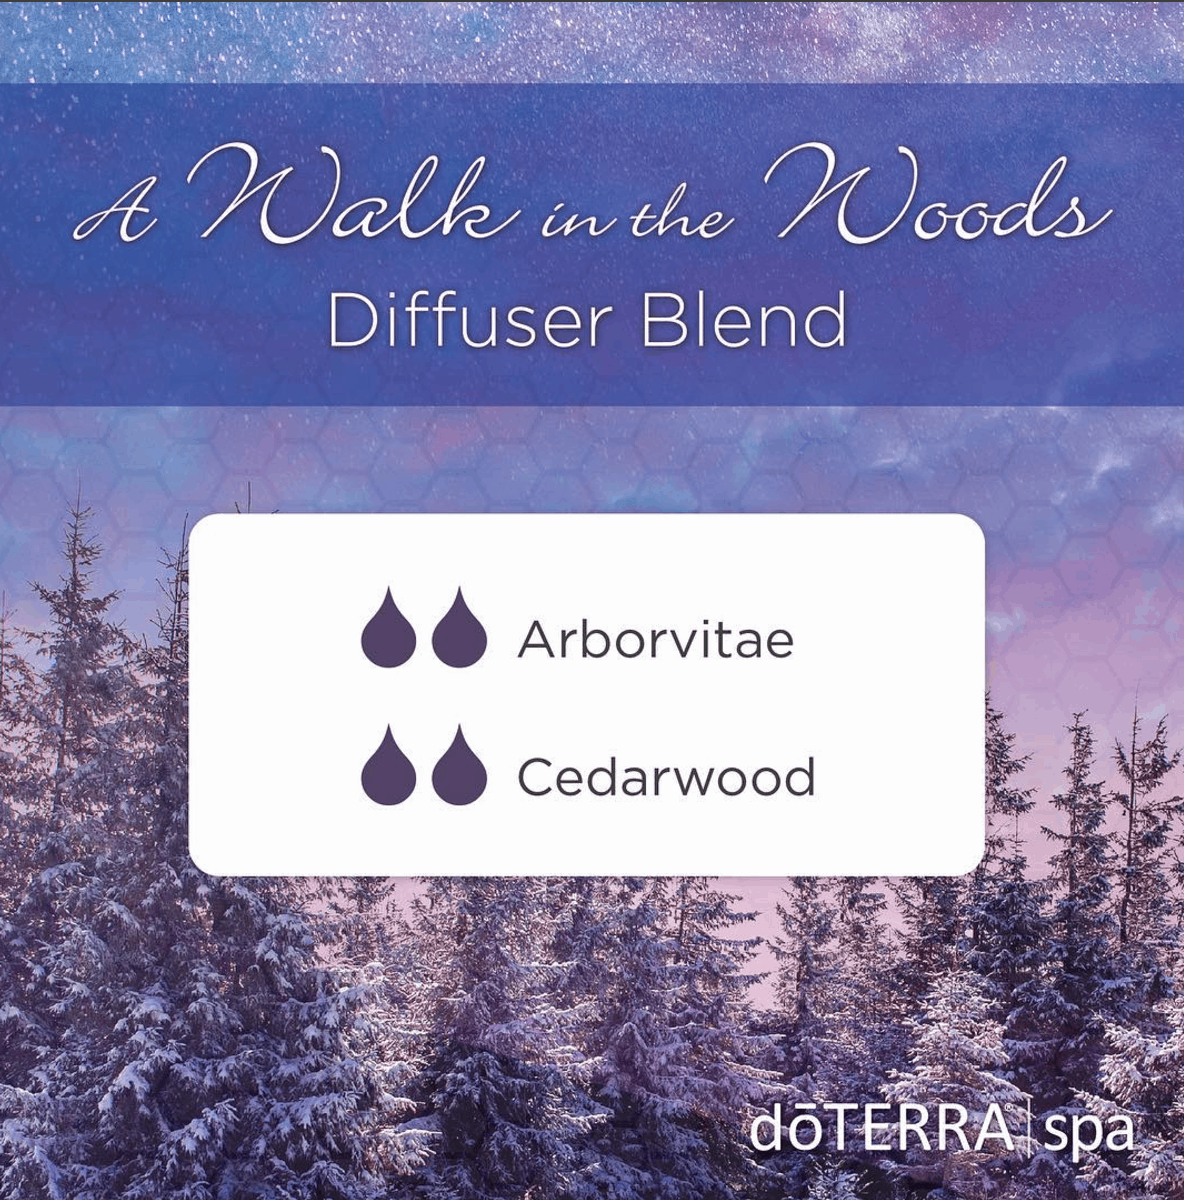 A Walk in the Woods doTERRA Diffuser Blend